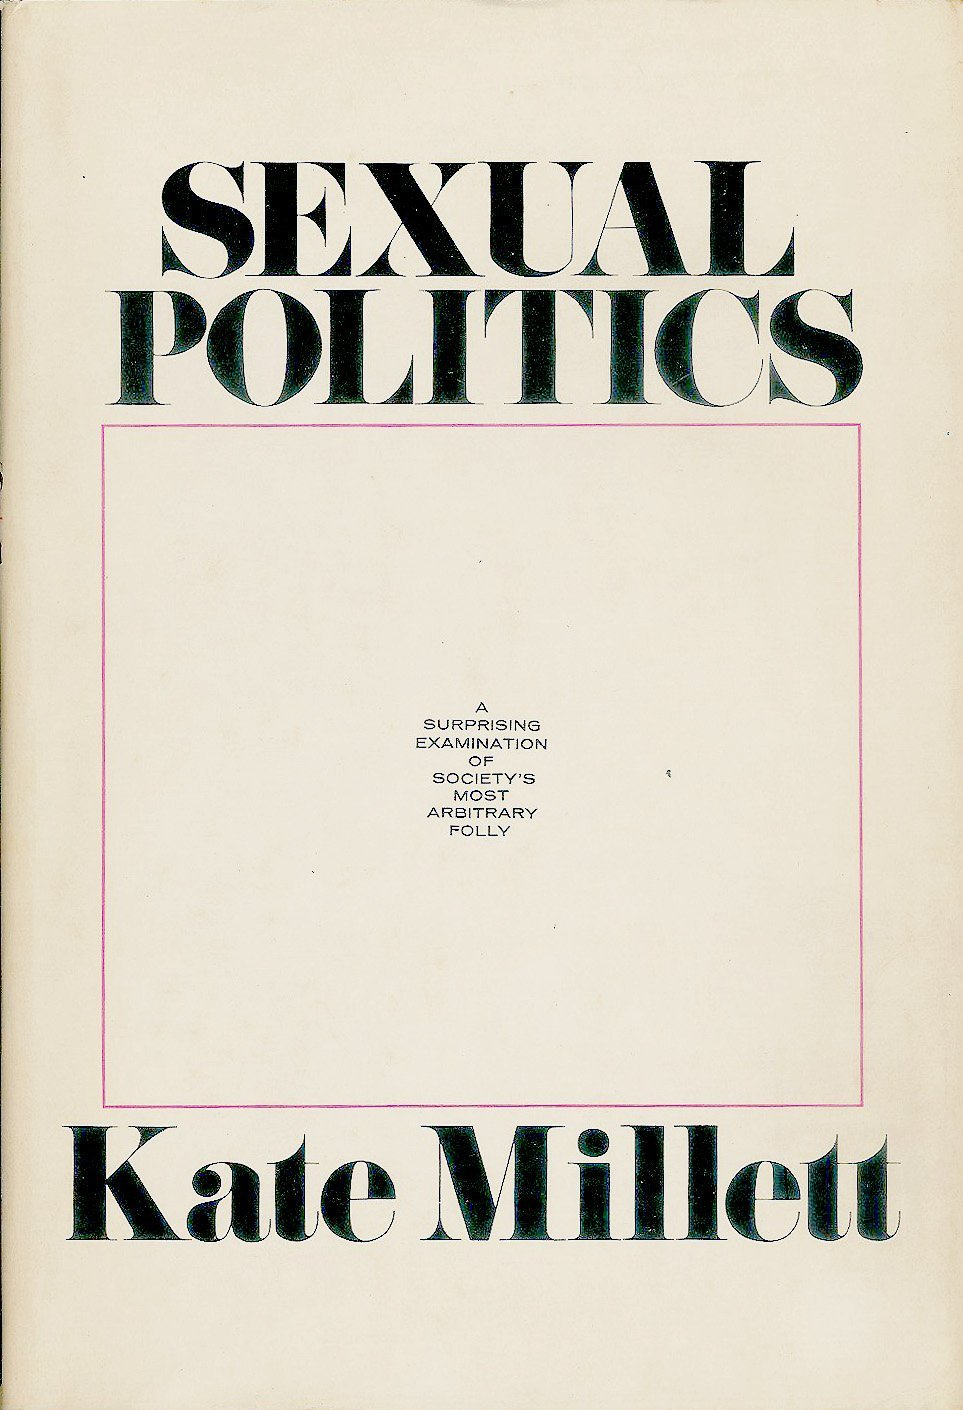 Sexual Politics: A Surprising Examination of Society's Most Arbitrary Folly, KATE MILLETT